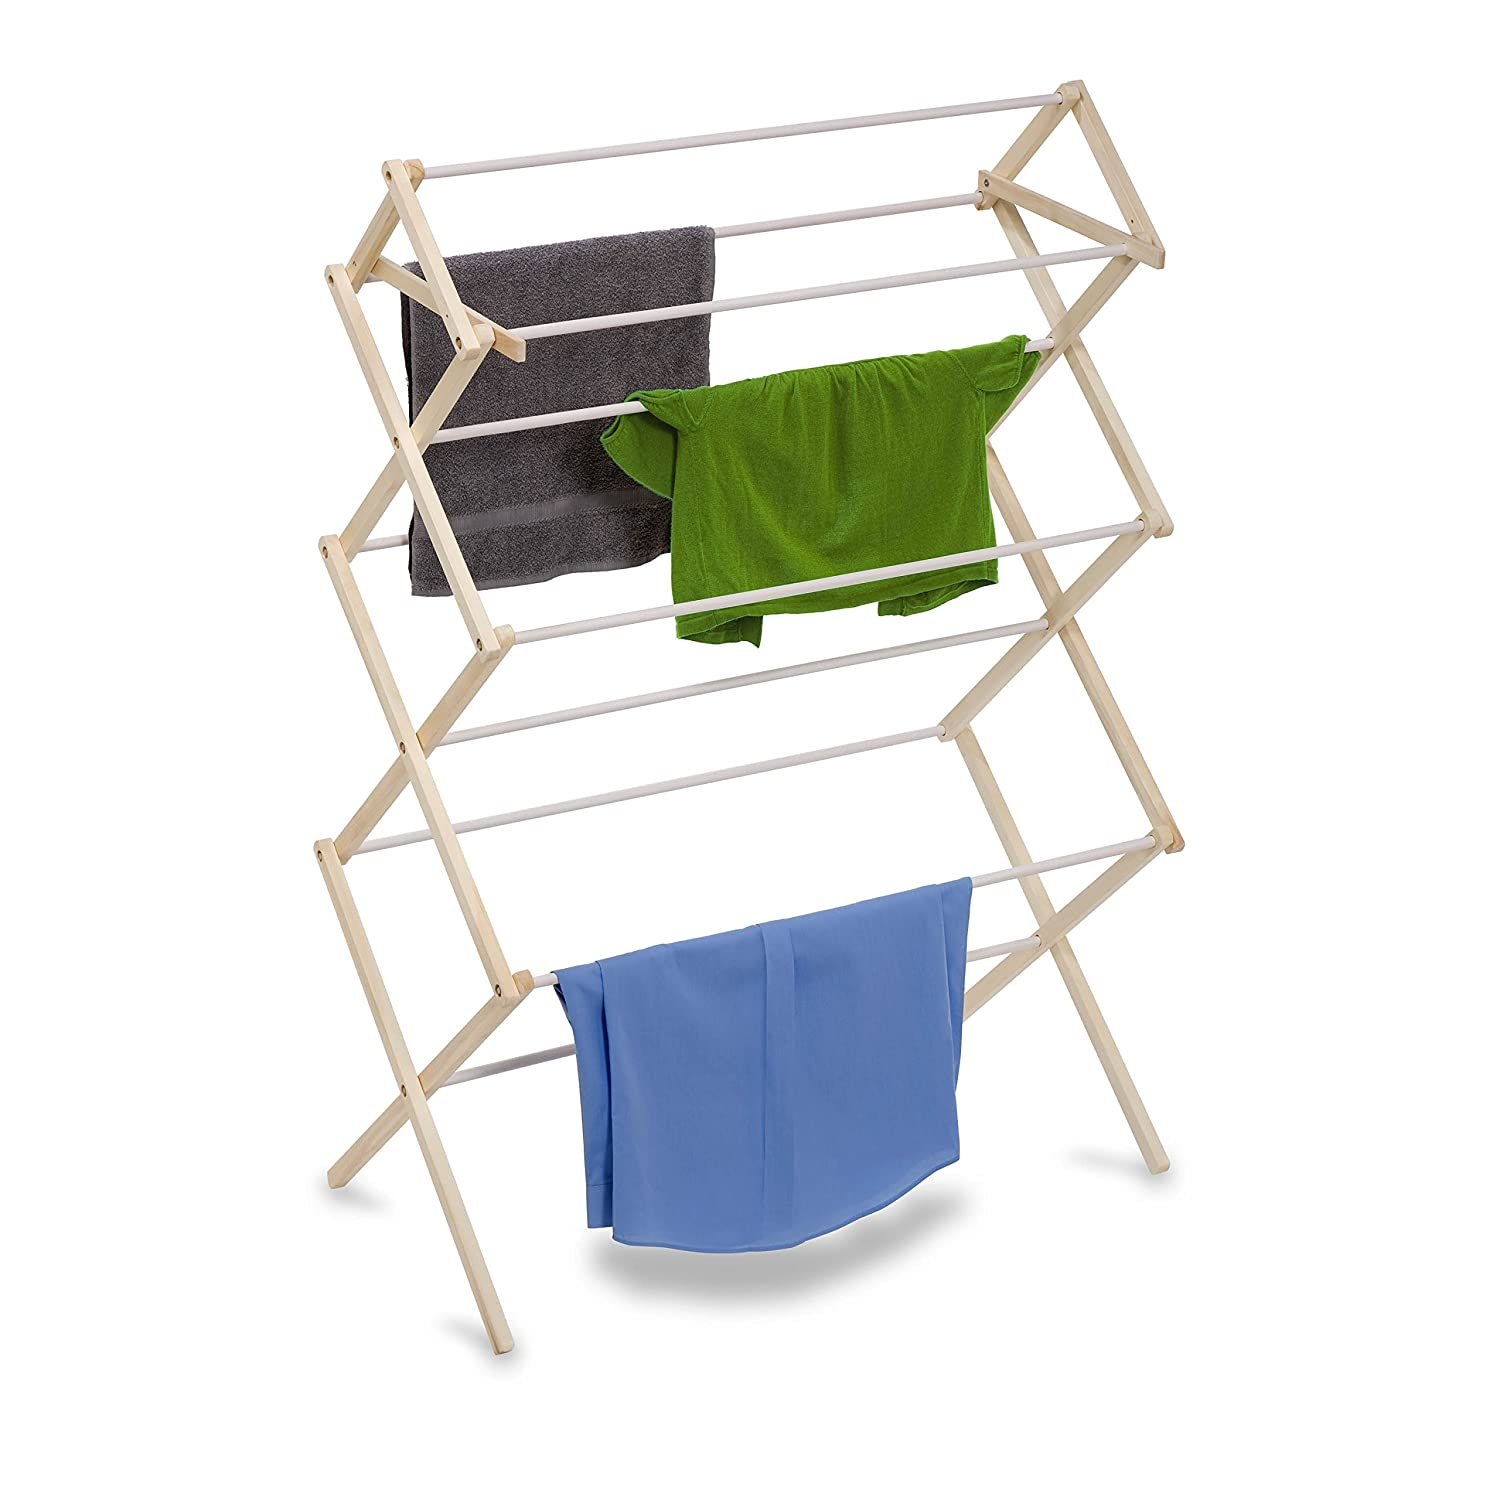 folding rack for bathroom plans australia ideas wall awesome clothes wood furniture hanging expandable beautiful scenic solid racks diy drying wooden laundry mounted